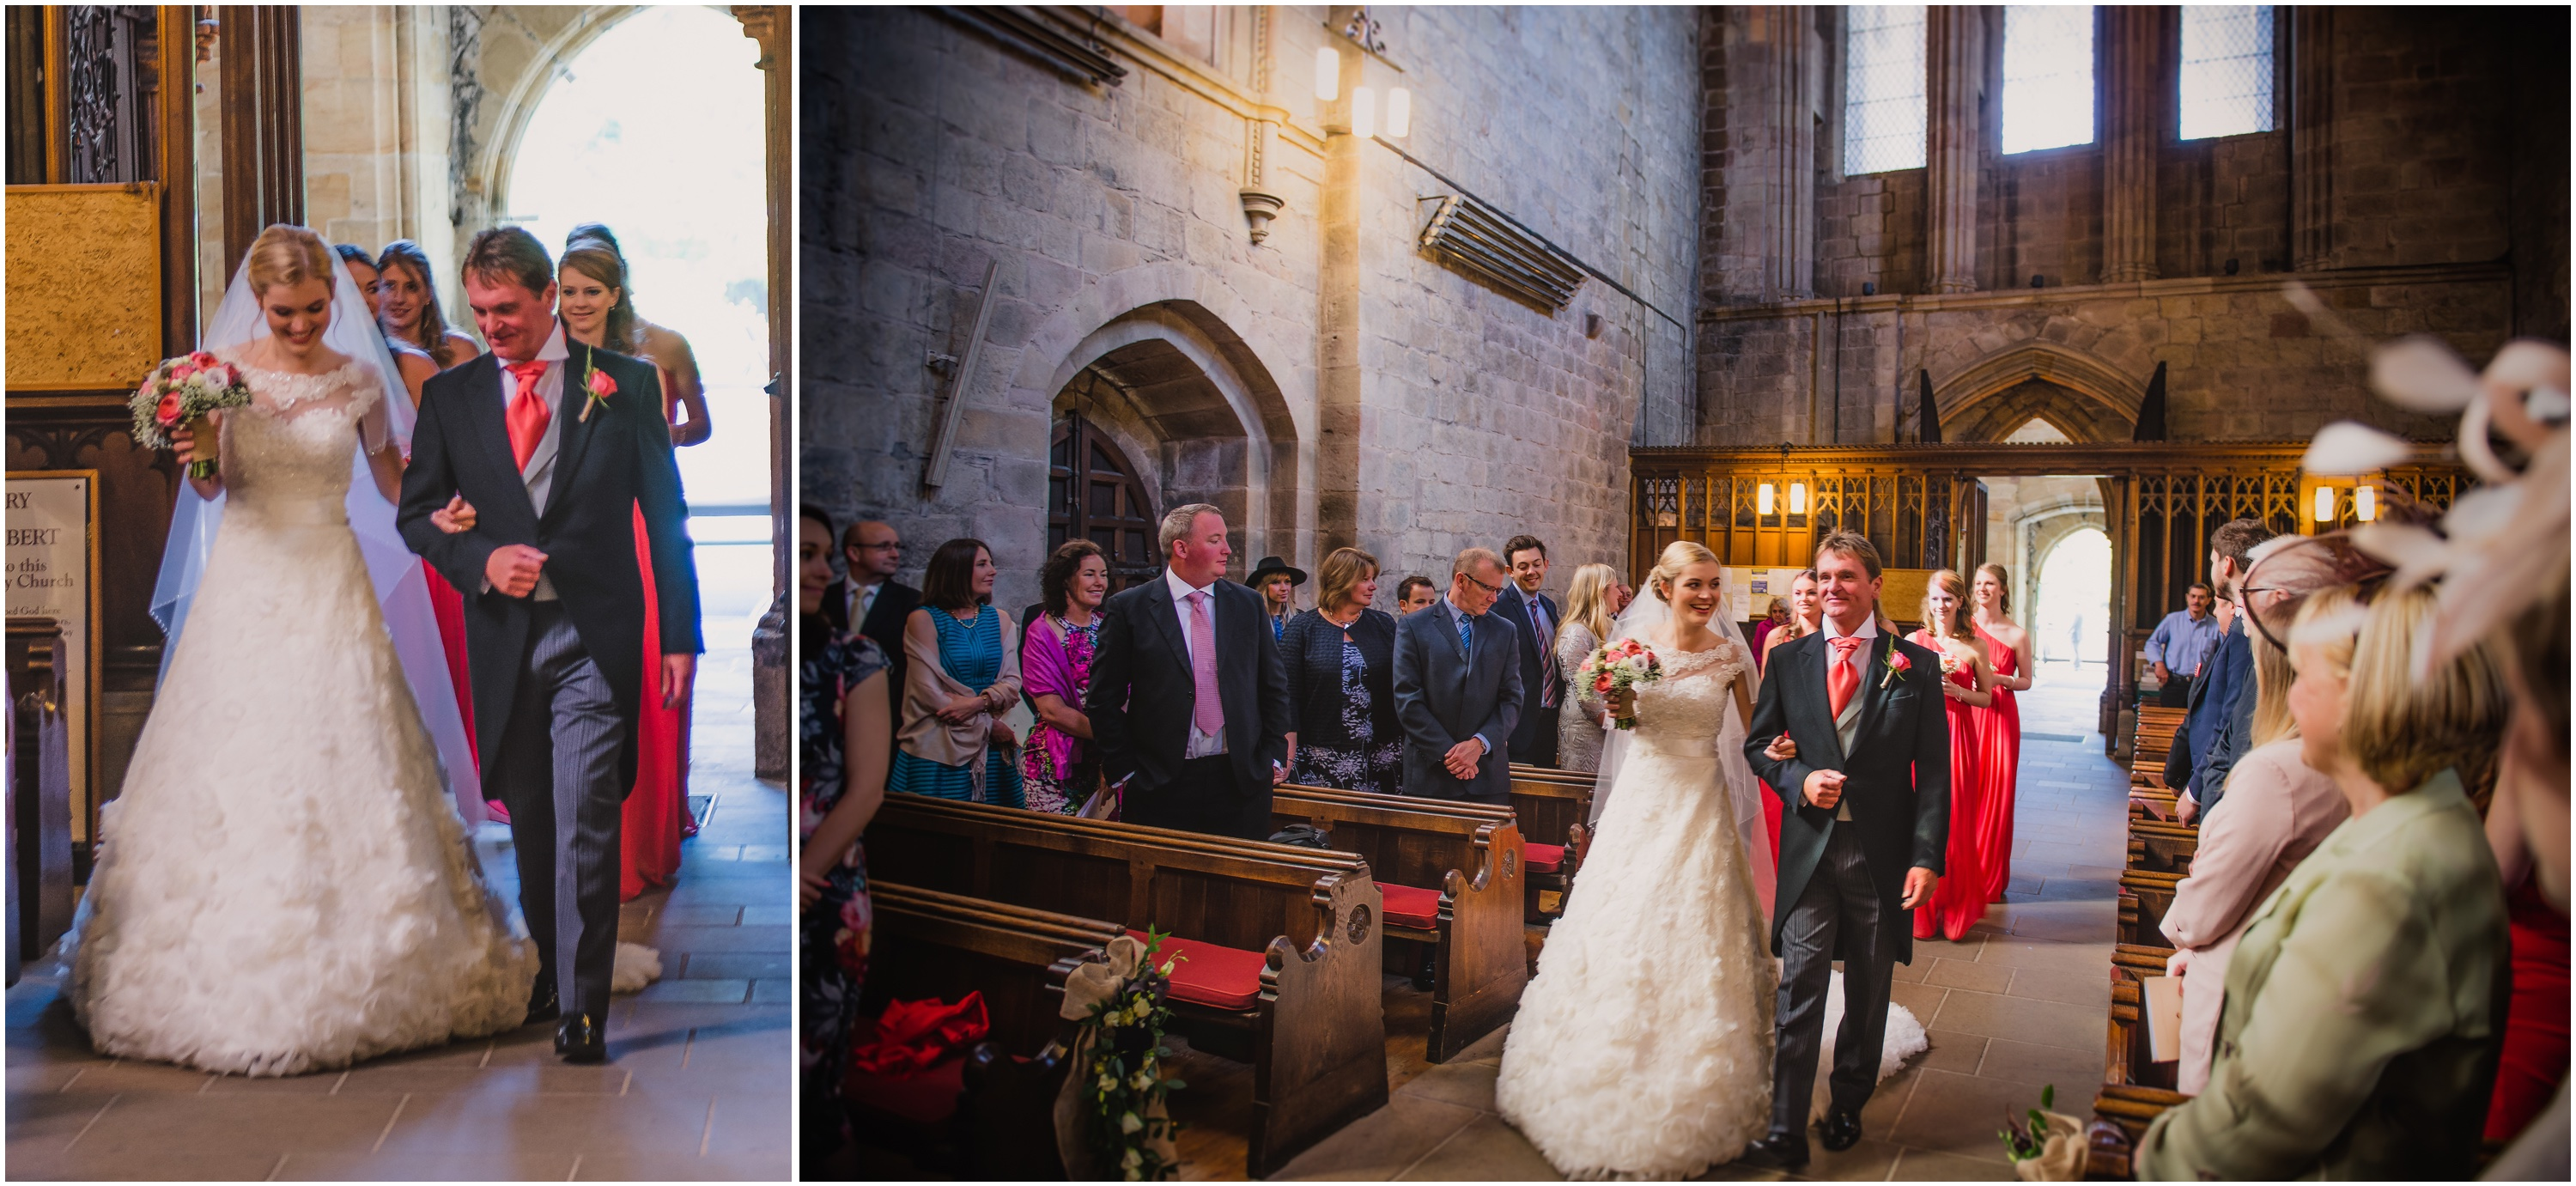 Low light image of wedding taking place at Bolton Abbey